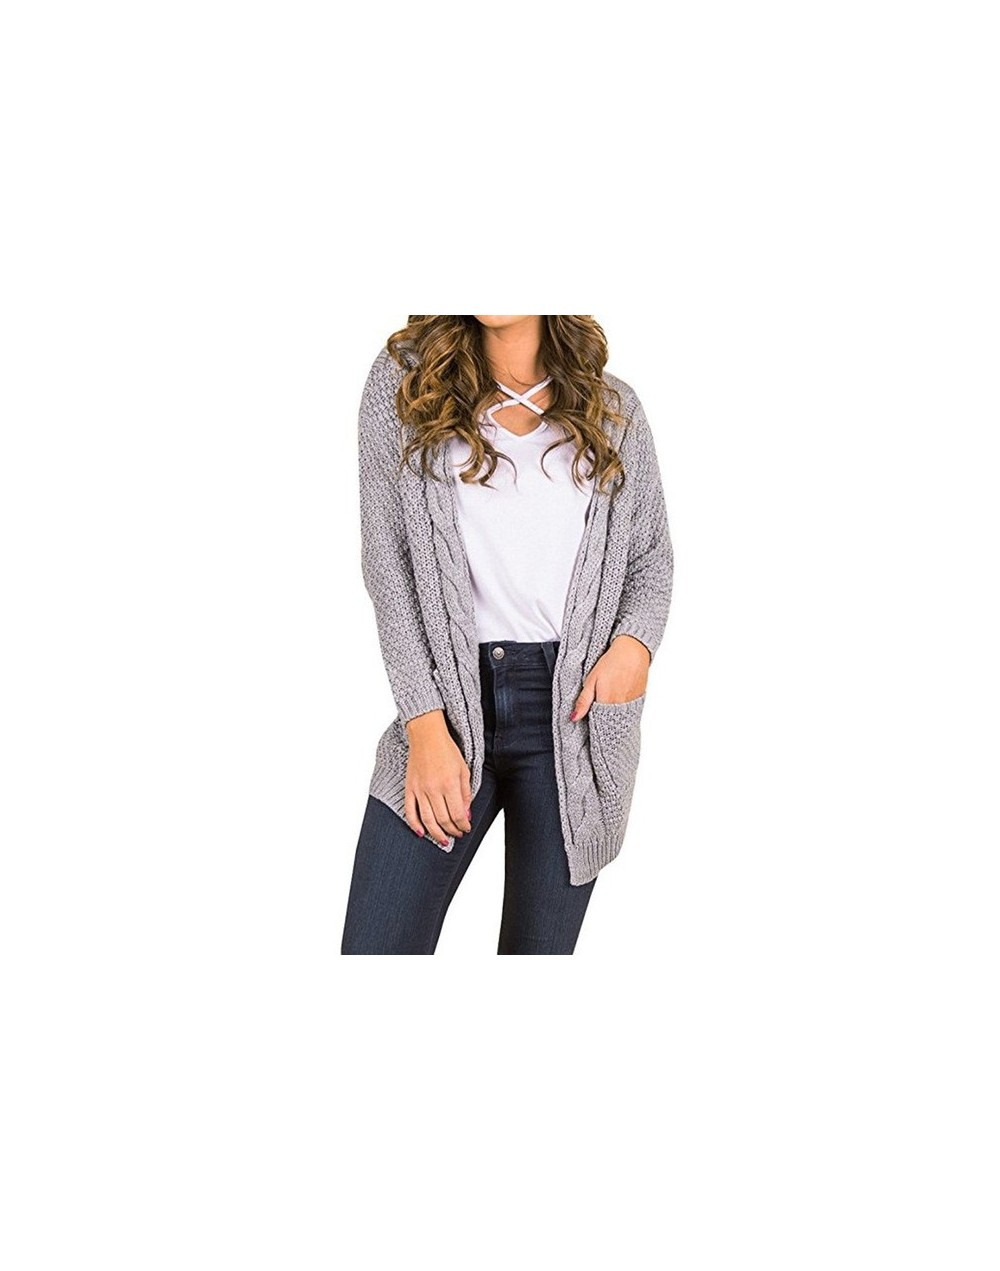 Long Cardigan Women Long Sleeve Knitted Sweater Cardigans Autumn Winter Womens Sweaters 2017 Jersey Mujer Invierno - Gray - ...